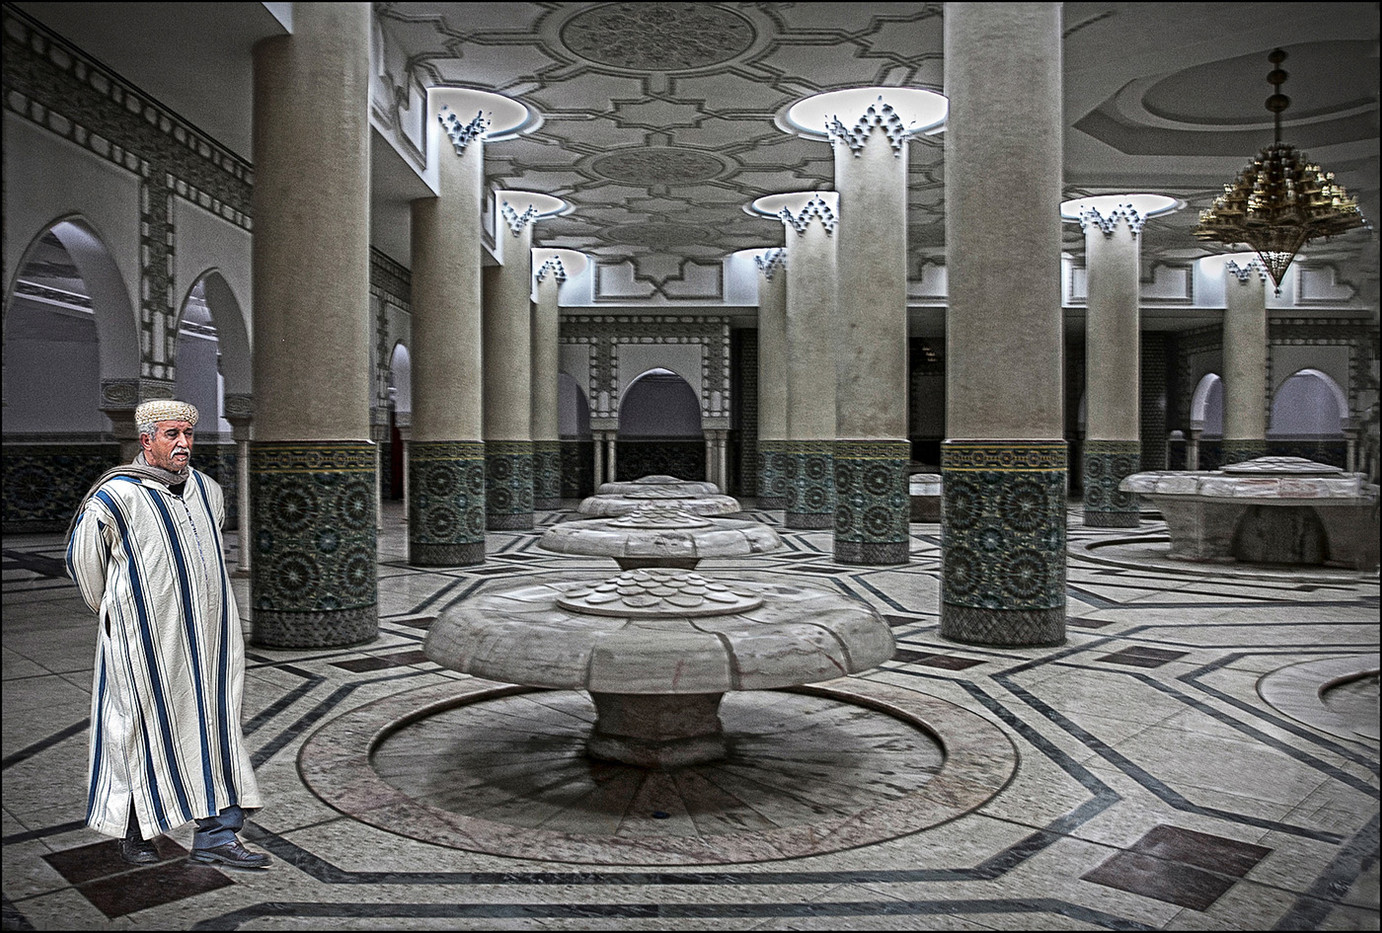 14 WALKING THROUGH THE FOUNTAINS BENEATH KING HASSAN II MOSQUE CASABLANCA by Graham Bunyan